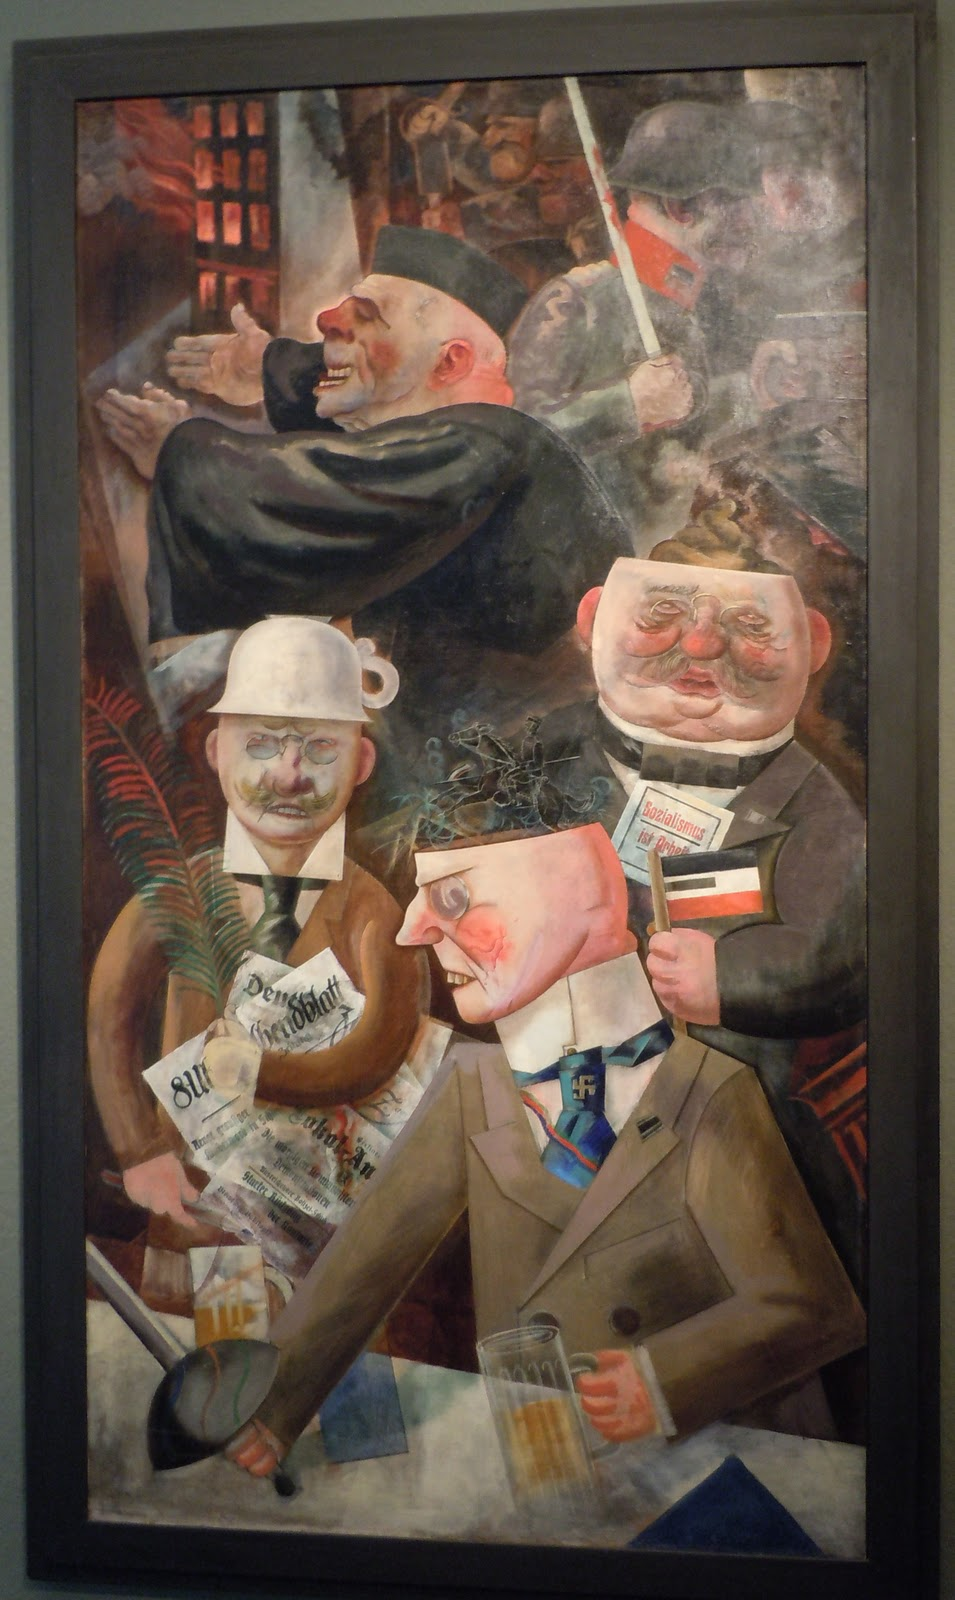 george grosz dada George grosz, german, 1893—1959 eclipse of the sun, 1926 oil on canvas heckscher museum of art, museum purchase the almighty american dollar brands the moon as it blacks out the sun in this surrealist- and dada-influenced painting by the german artist george grosz here, the eclipse becomes a sign of.